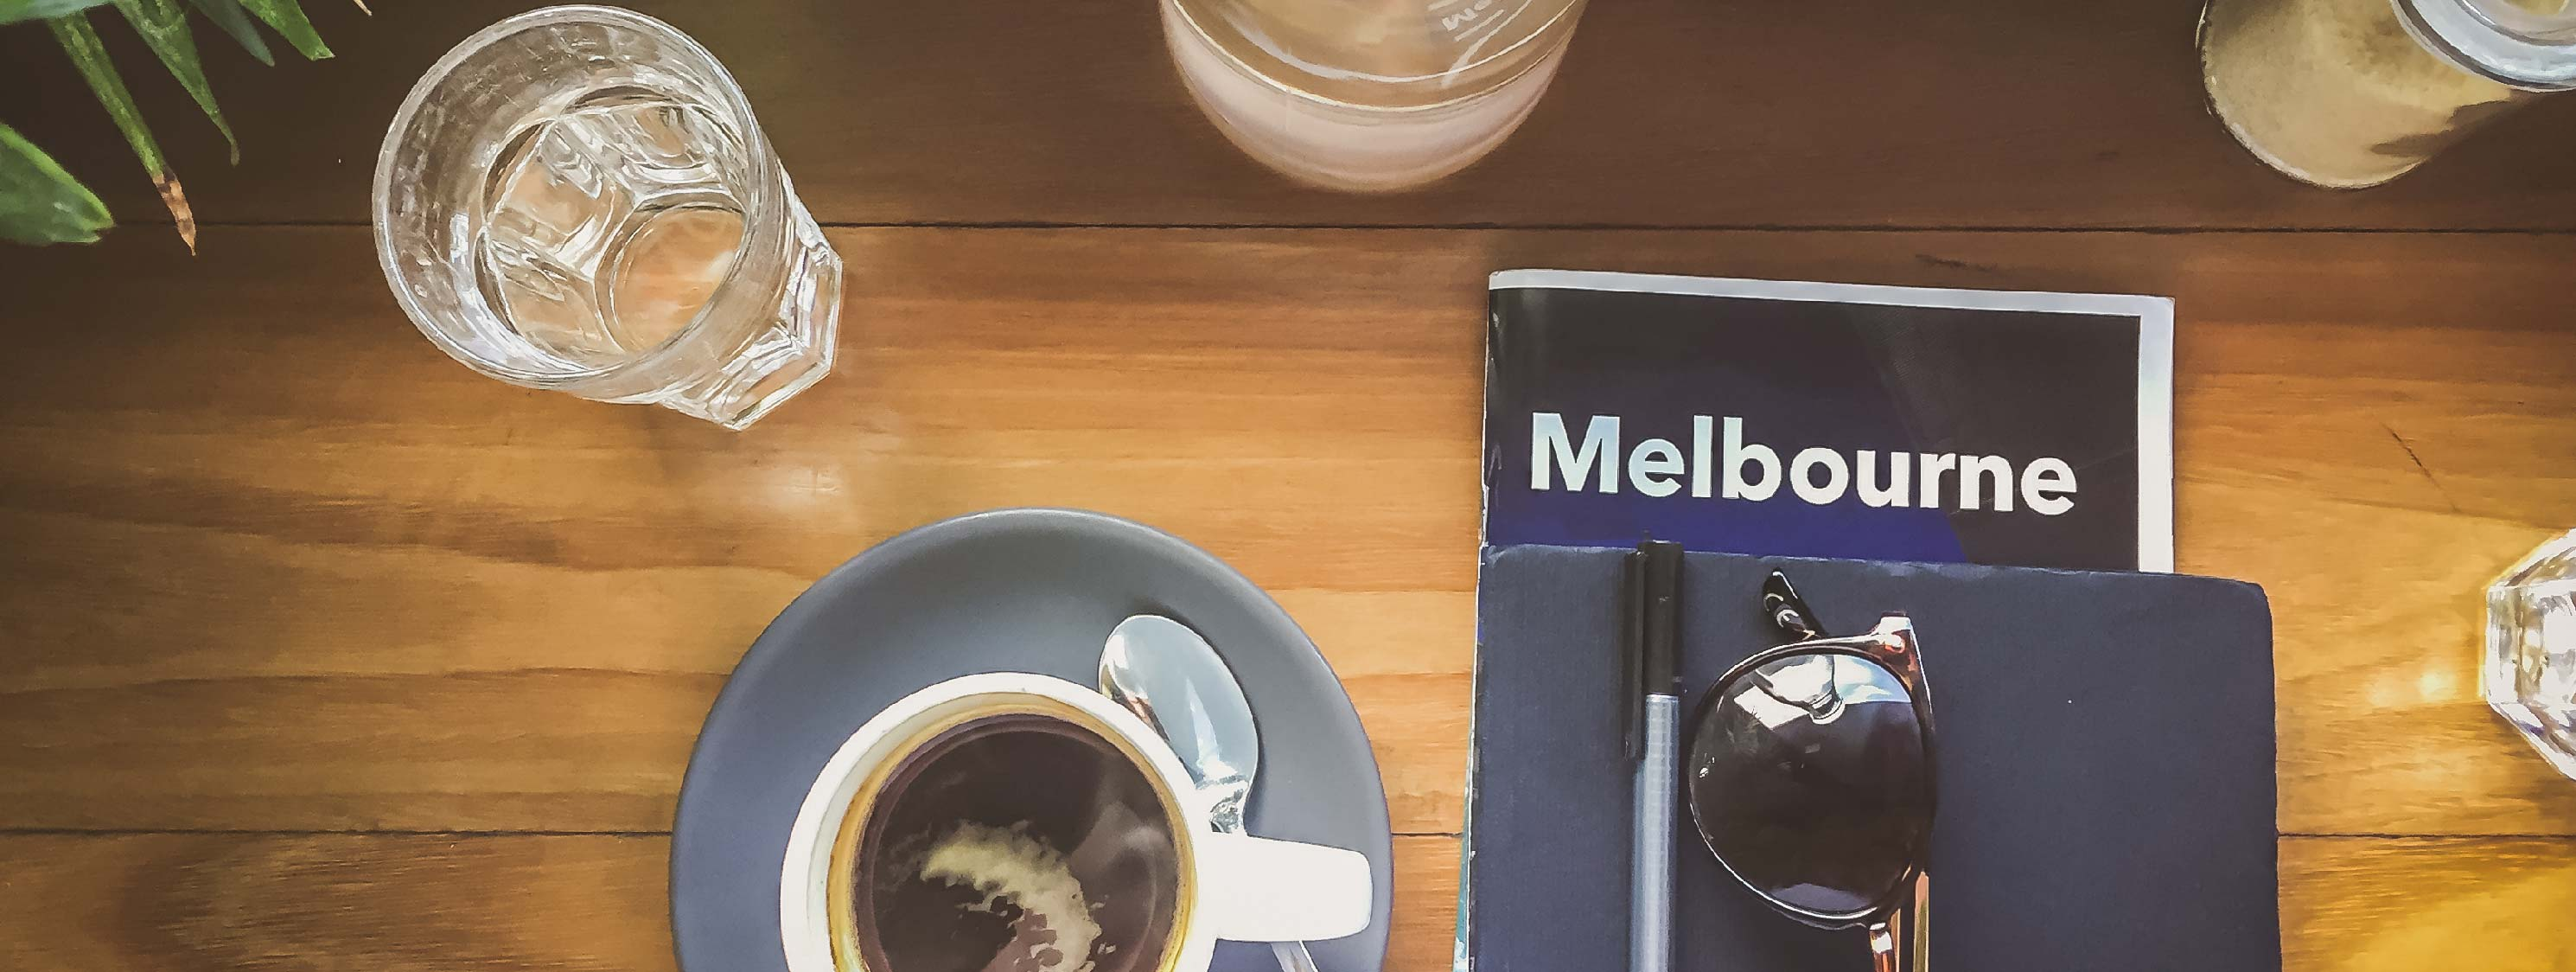 Melbourne Guide in a cafe